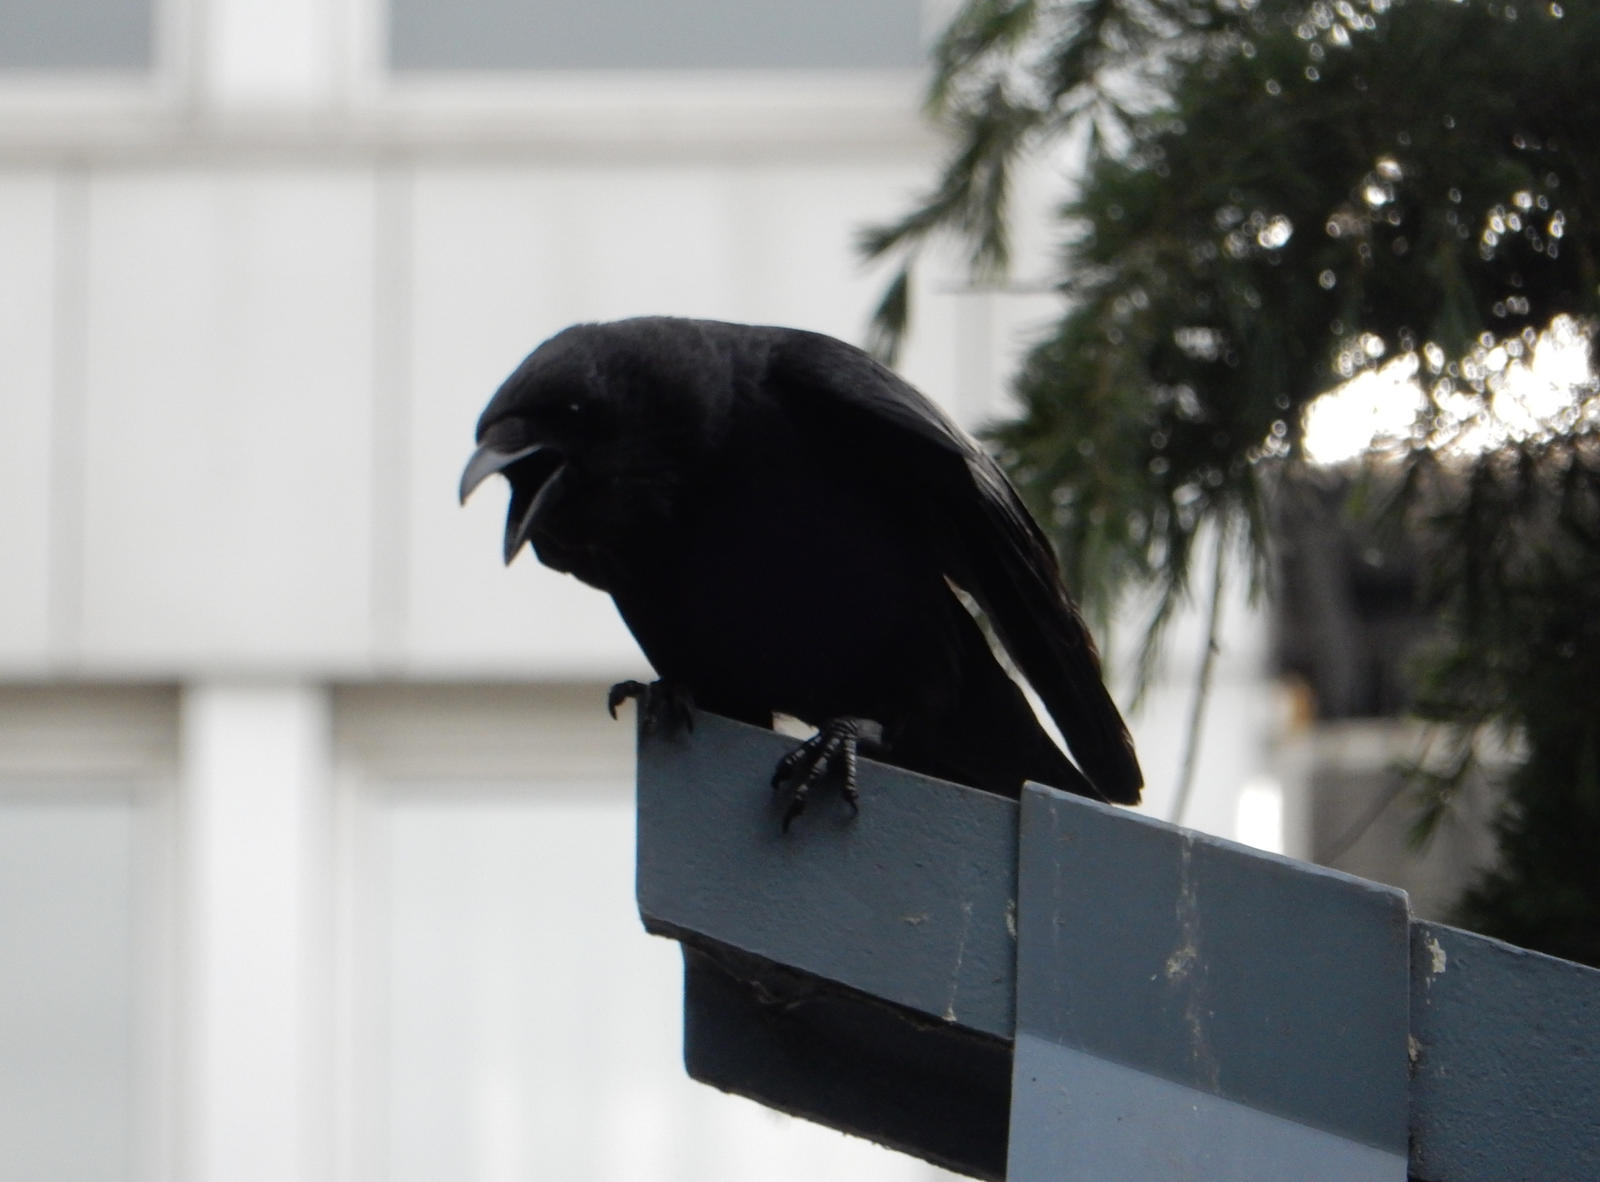 Crow On Southend Warrior Square By Rlkitterman On Deviantart